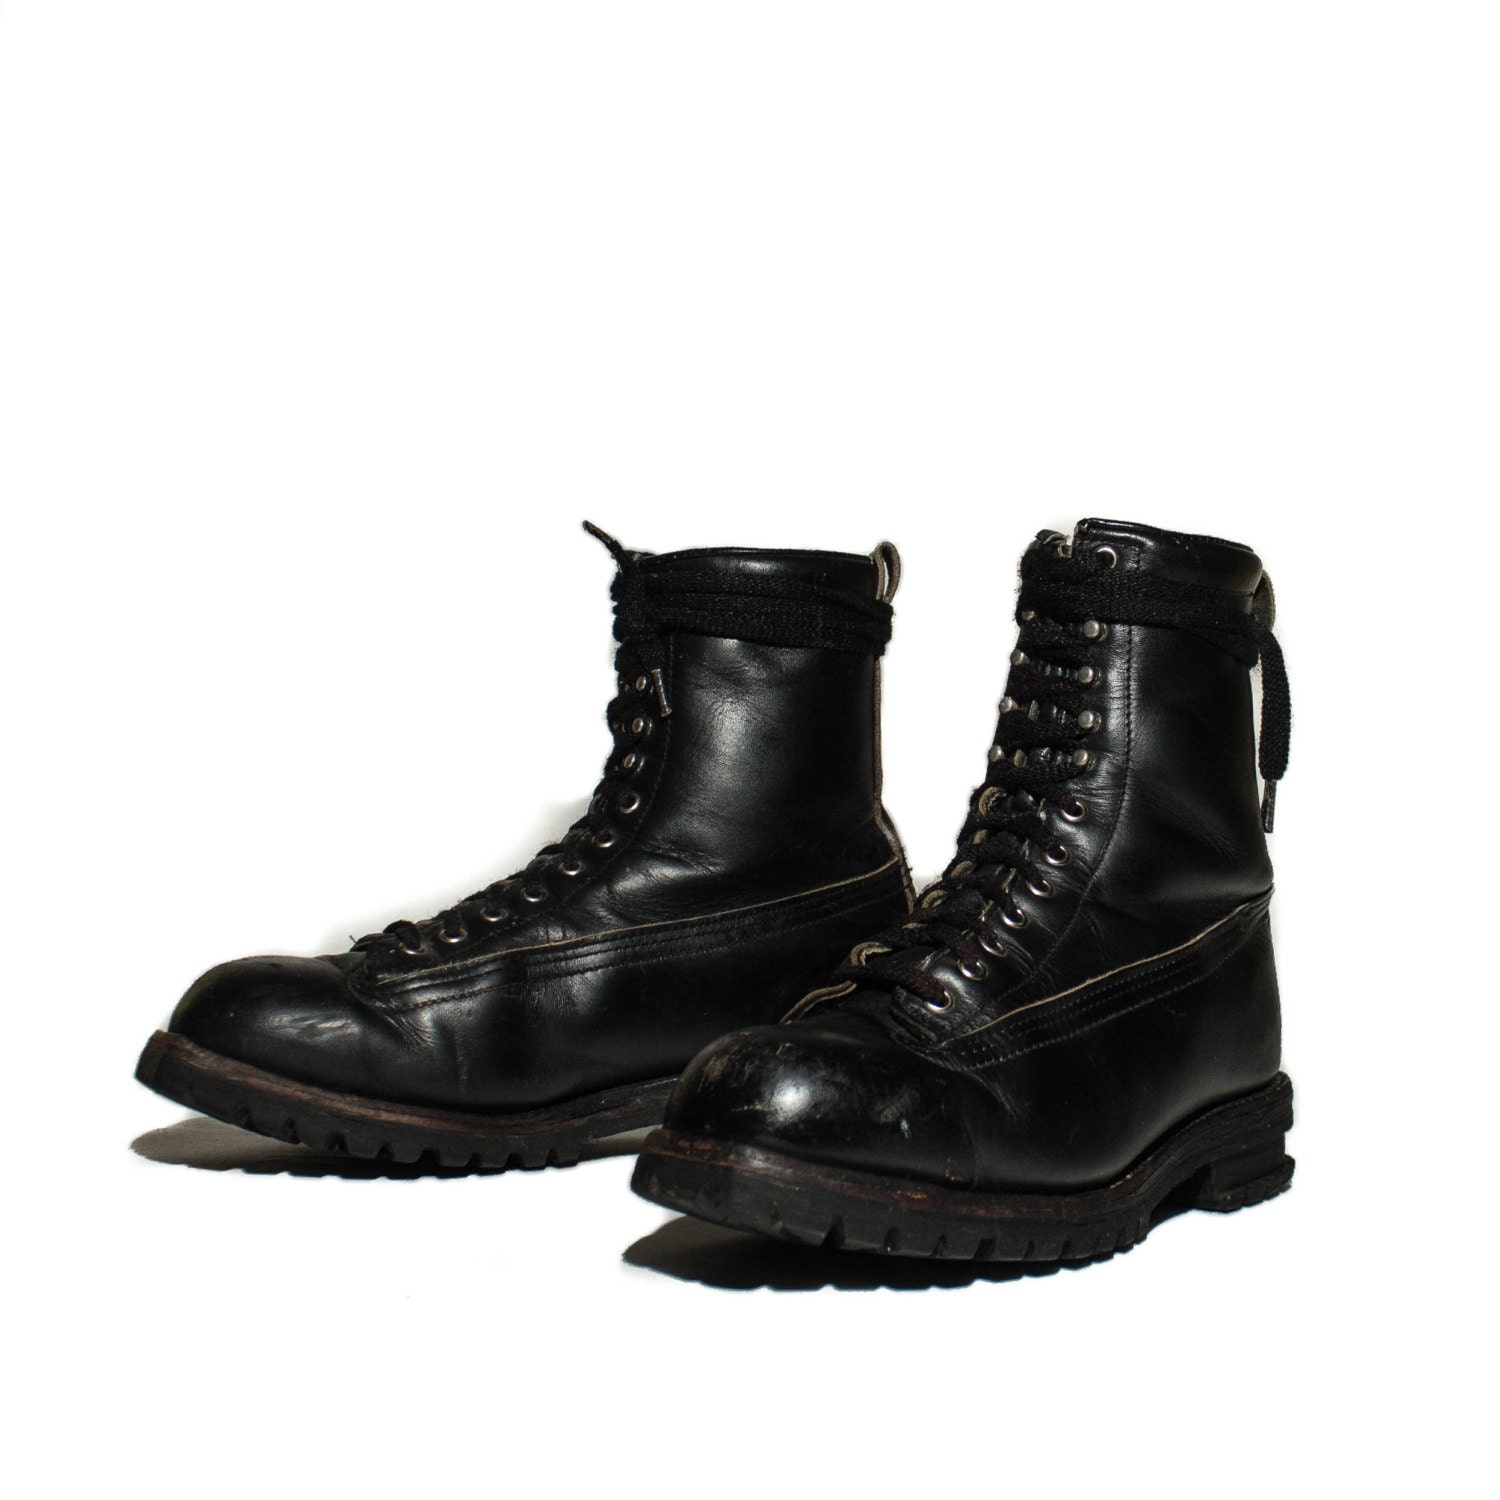 11 vintage chippewa survival boot black leather lace up